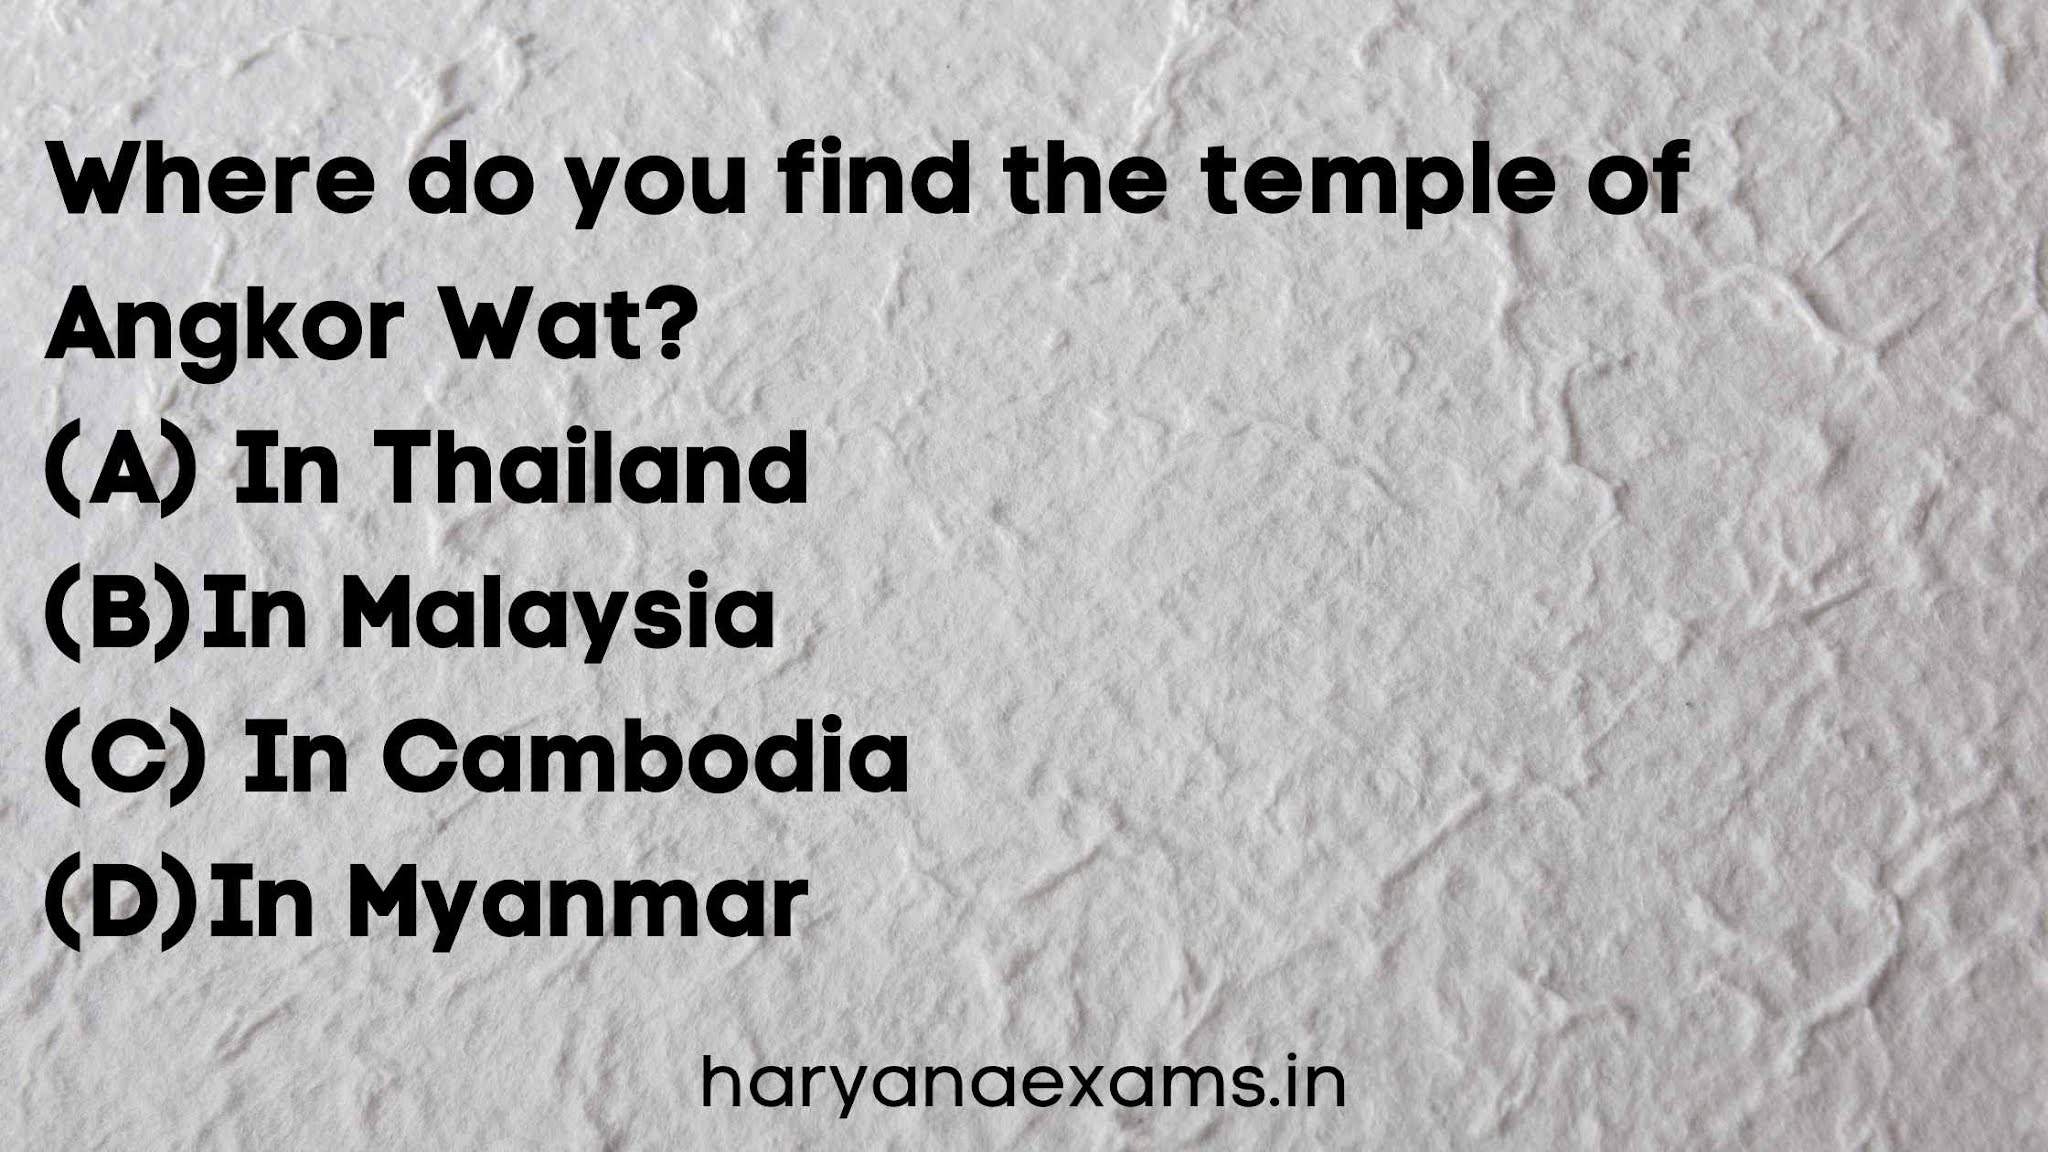 Where do you find the temple of Angkor Wat?   (A) In Thailand   (B)In Malaysia   (C) In Cambodia   (D)In Myanmar